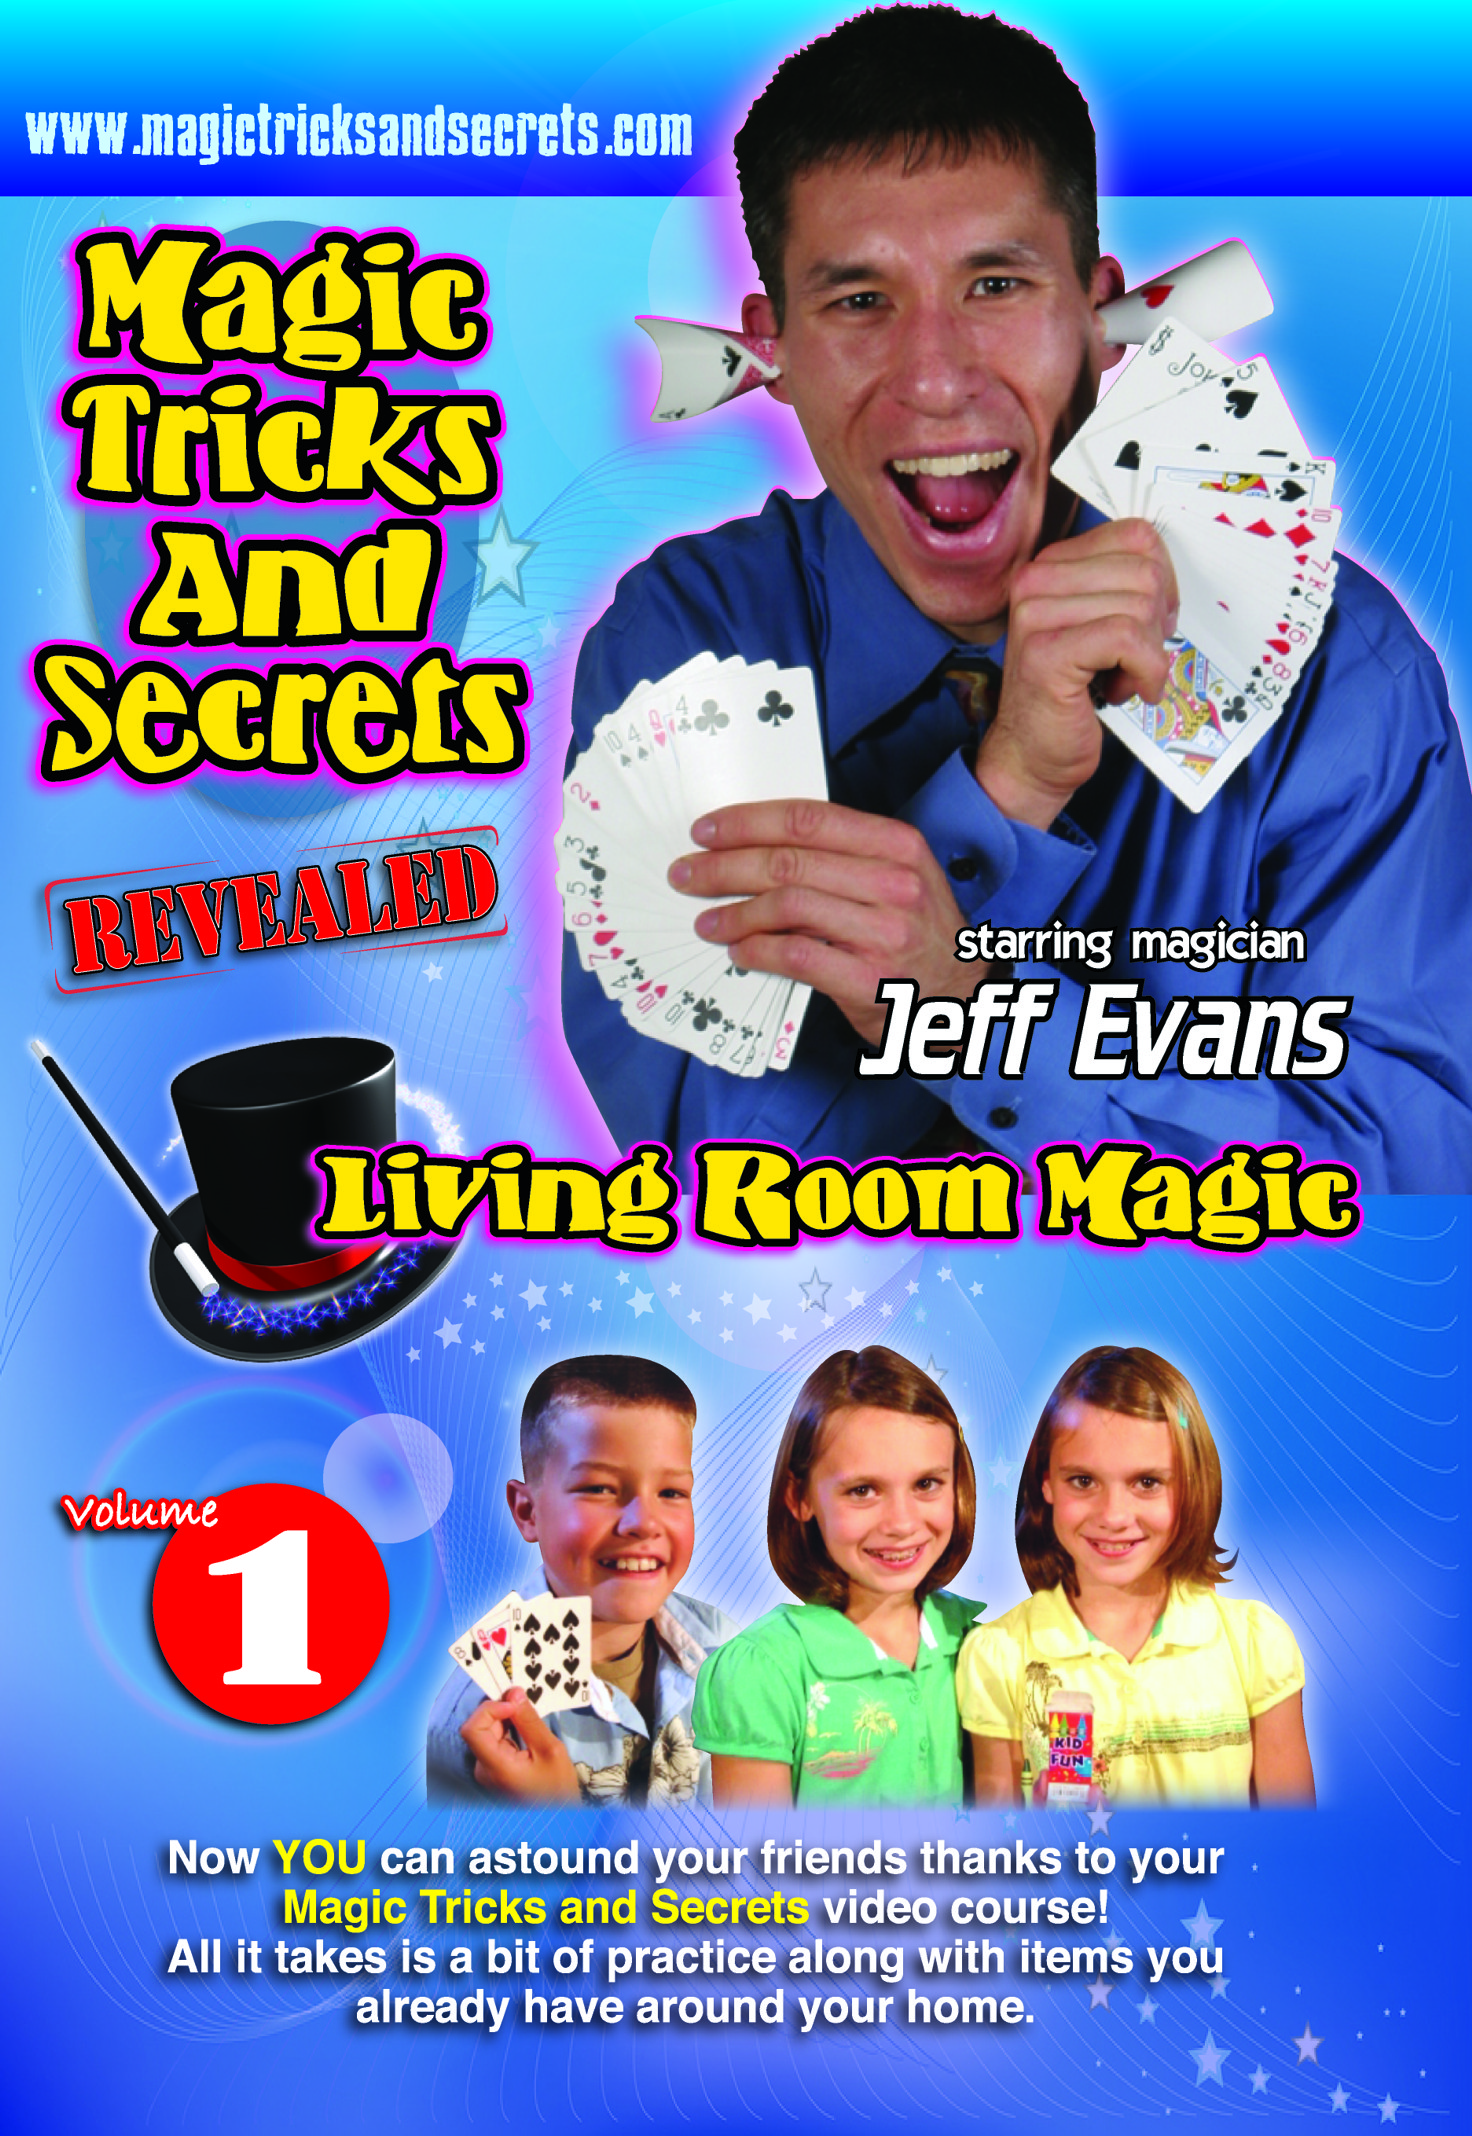 Magic Tricks and Secrets DVDs - quantity 2